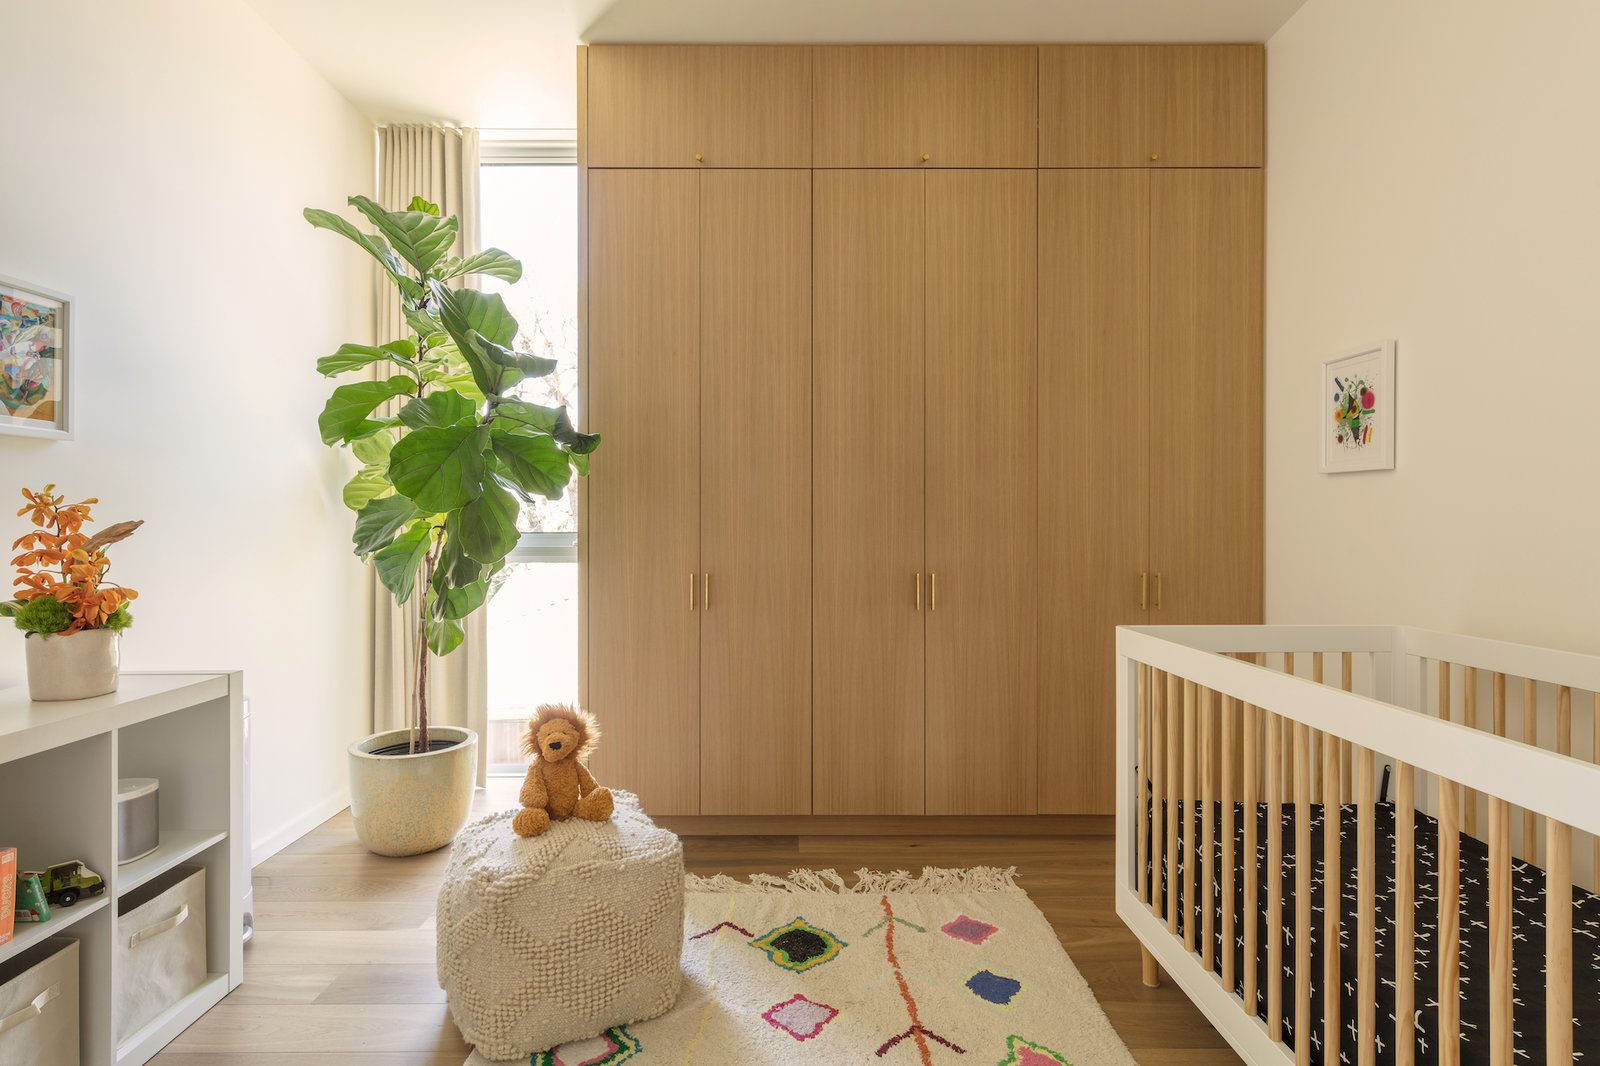 Nursery at Culver City Case Study House by Woods + Dangaran